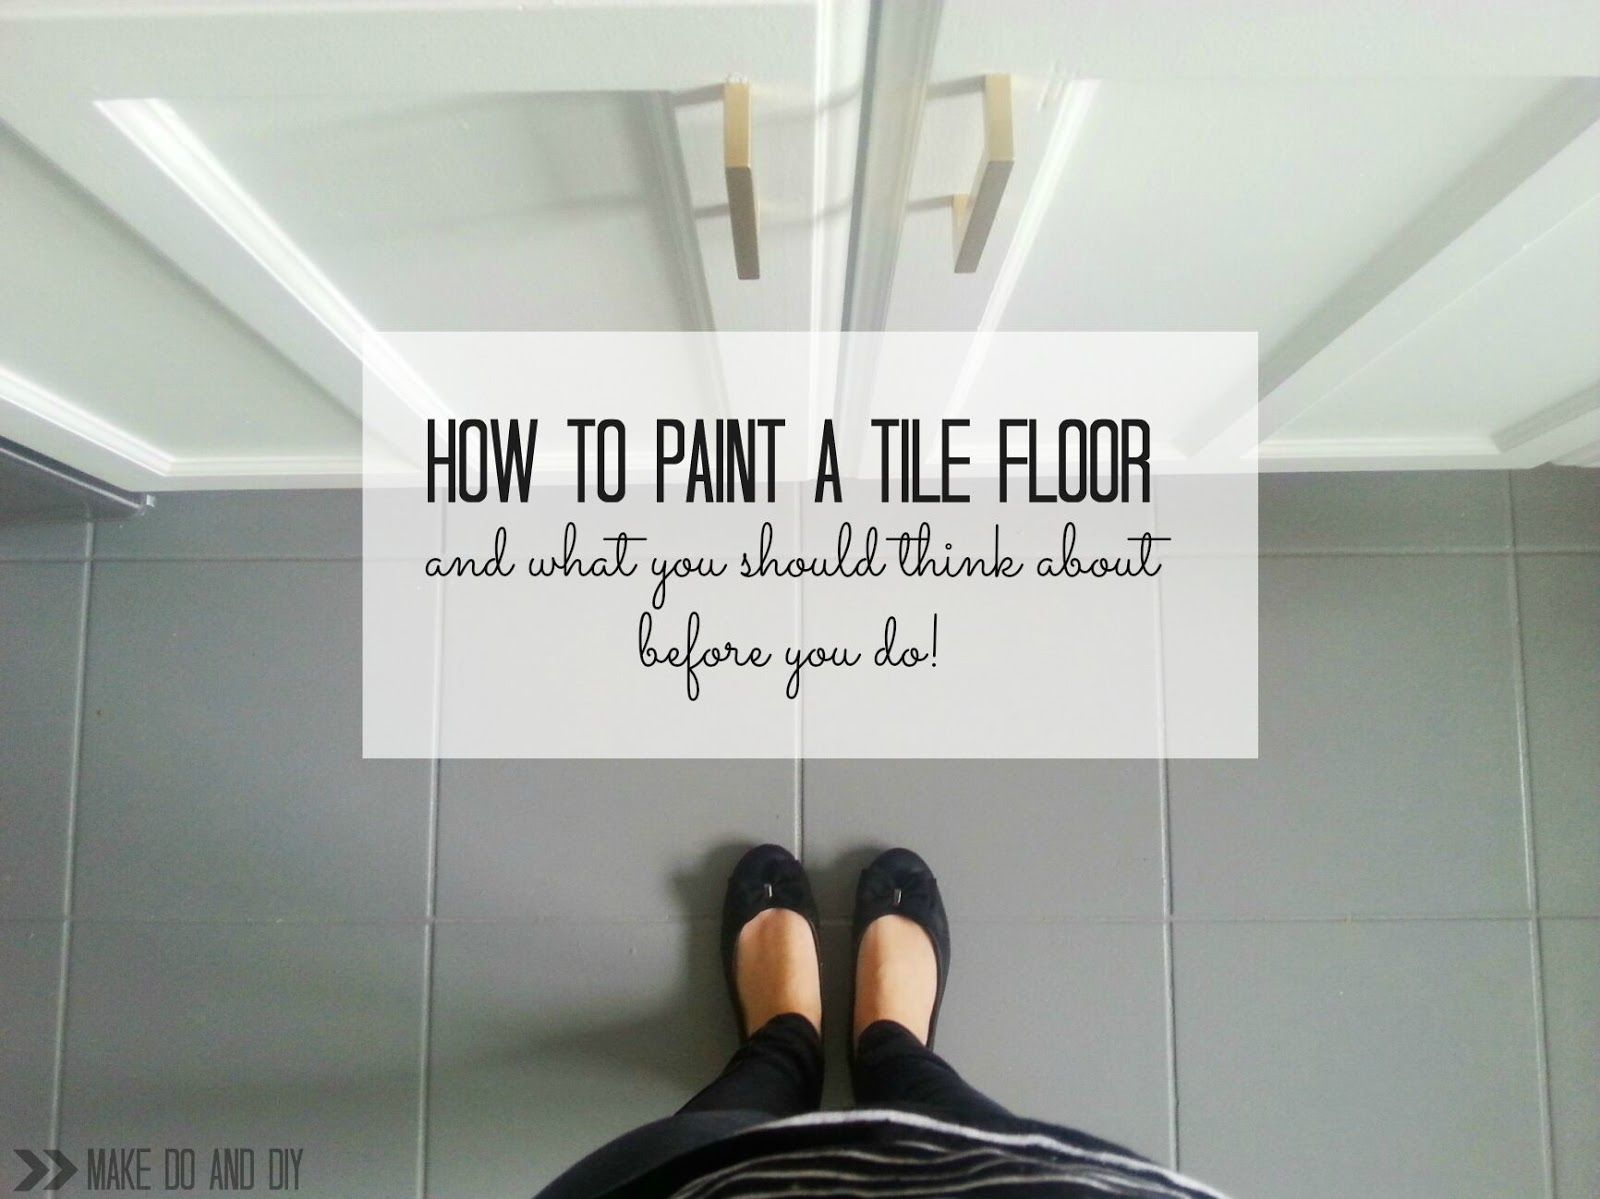 How to paint a tile floor and what you should think about before how to paint a tile floor and what you should think about before you do dailygadgetfo Gallery